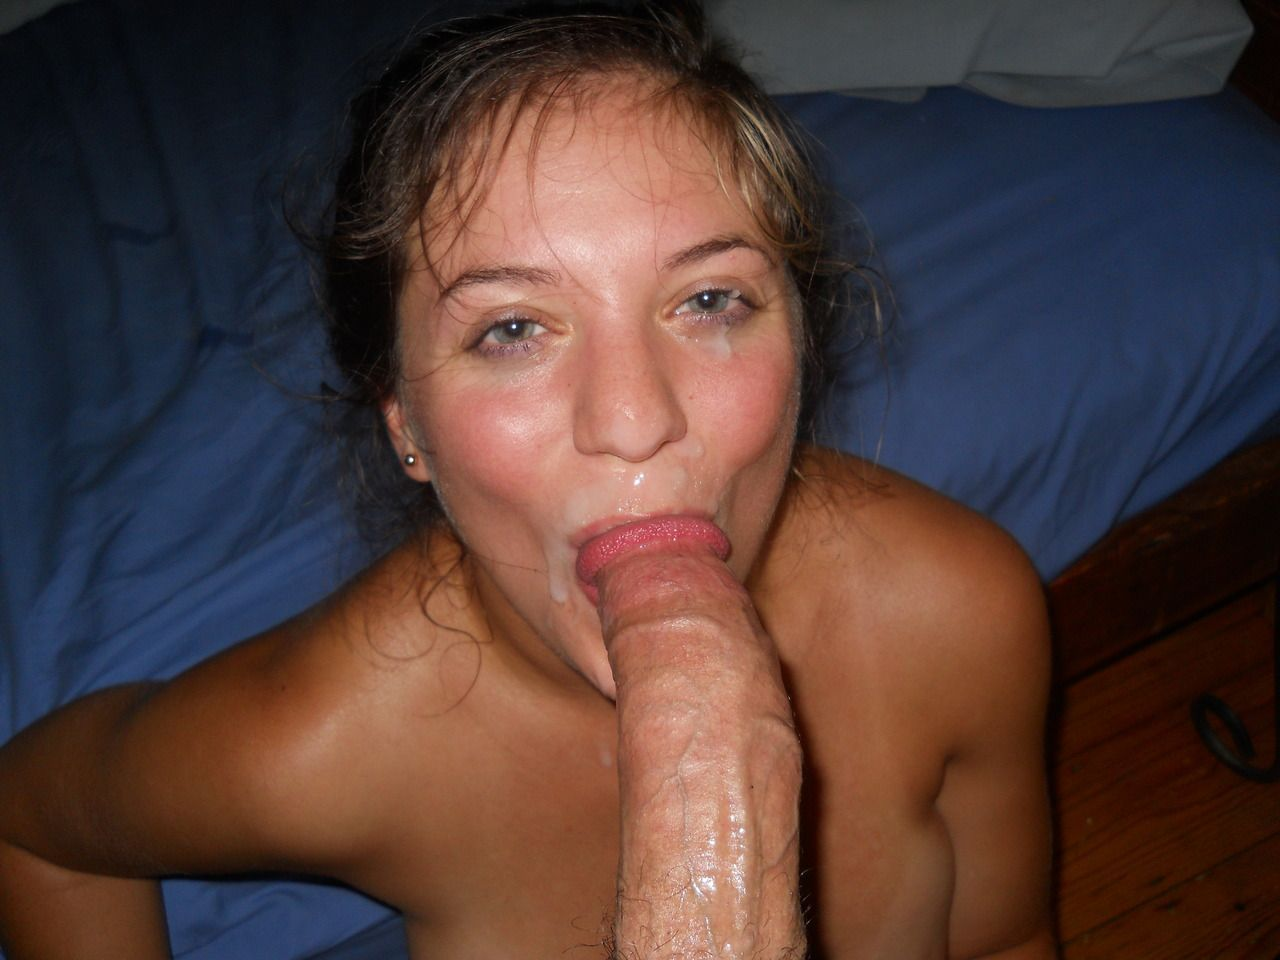 Handjob girl cum tube